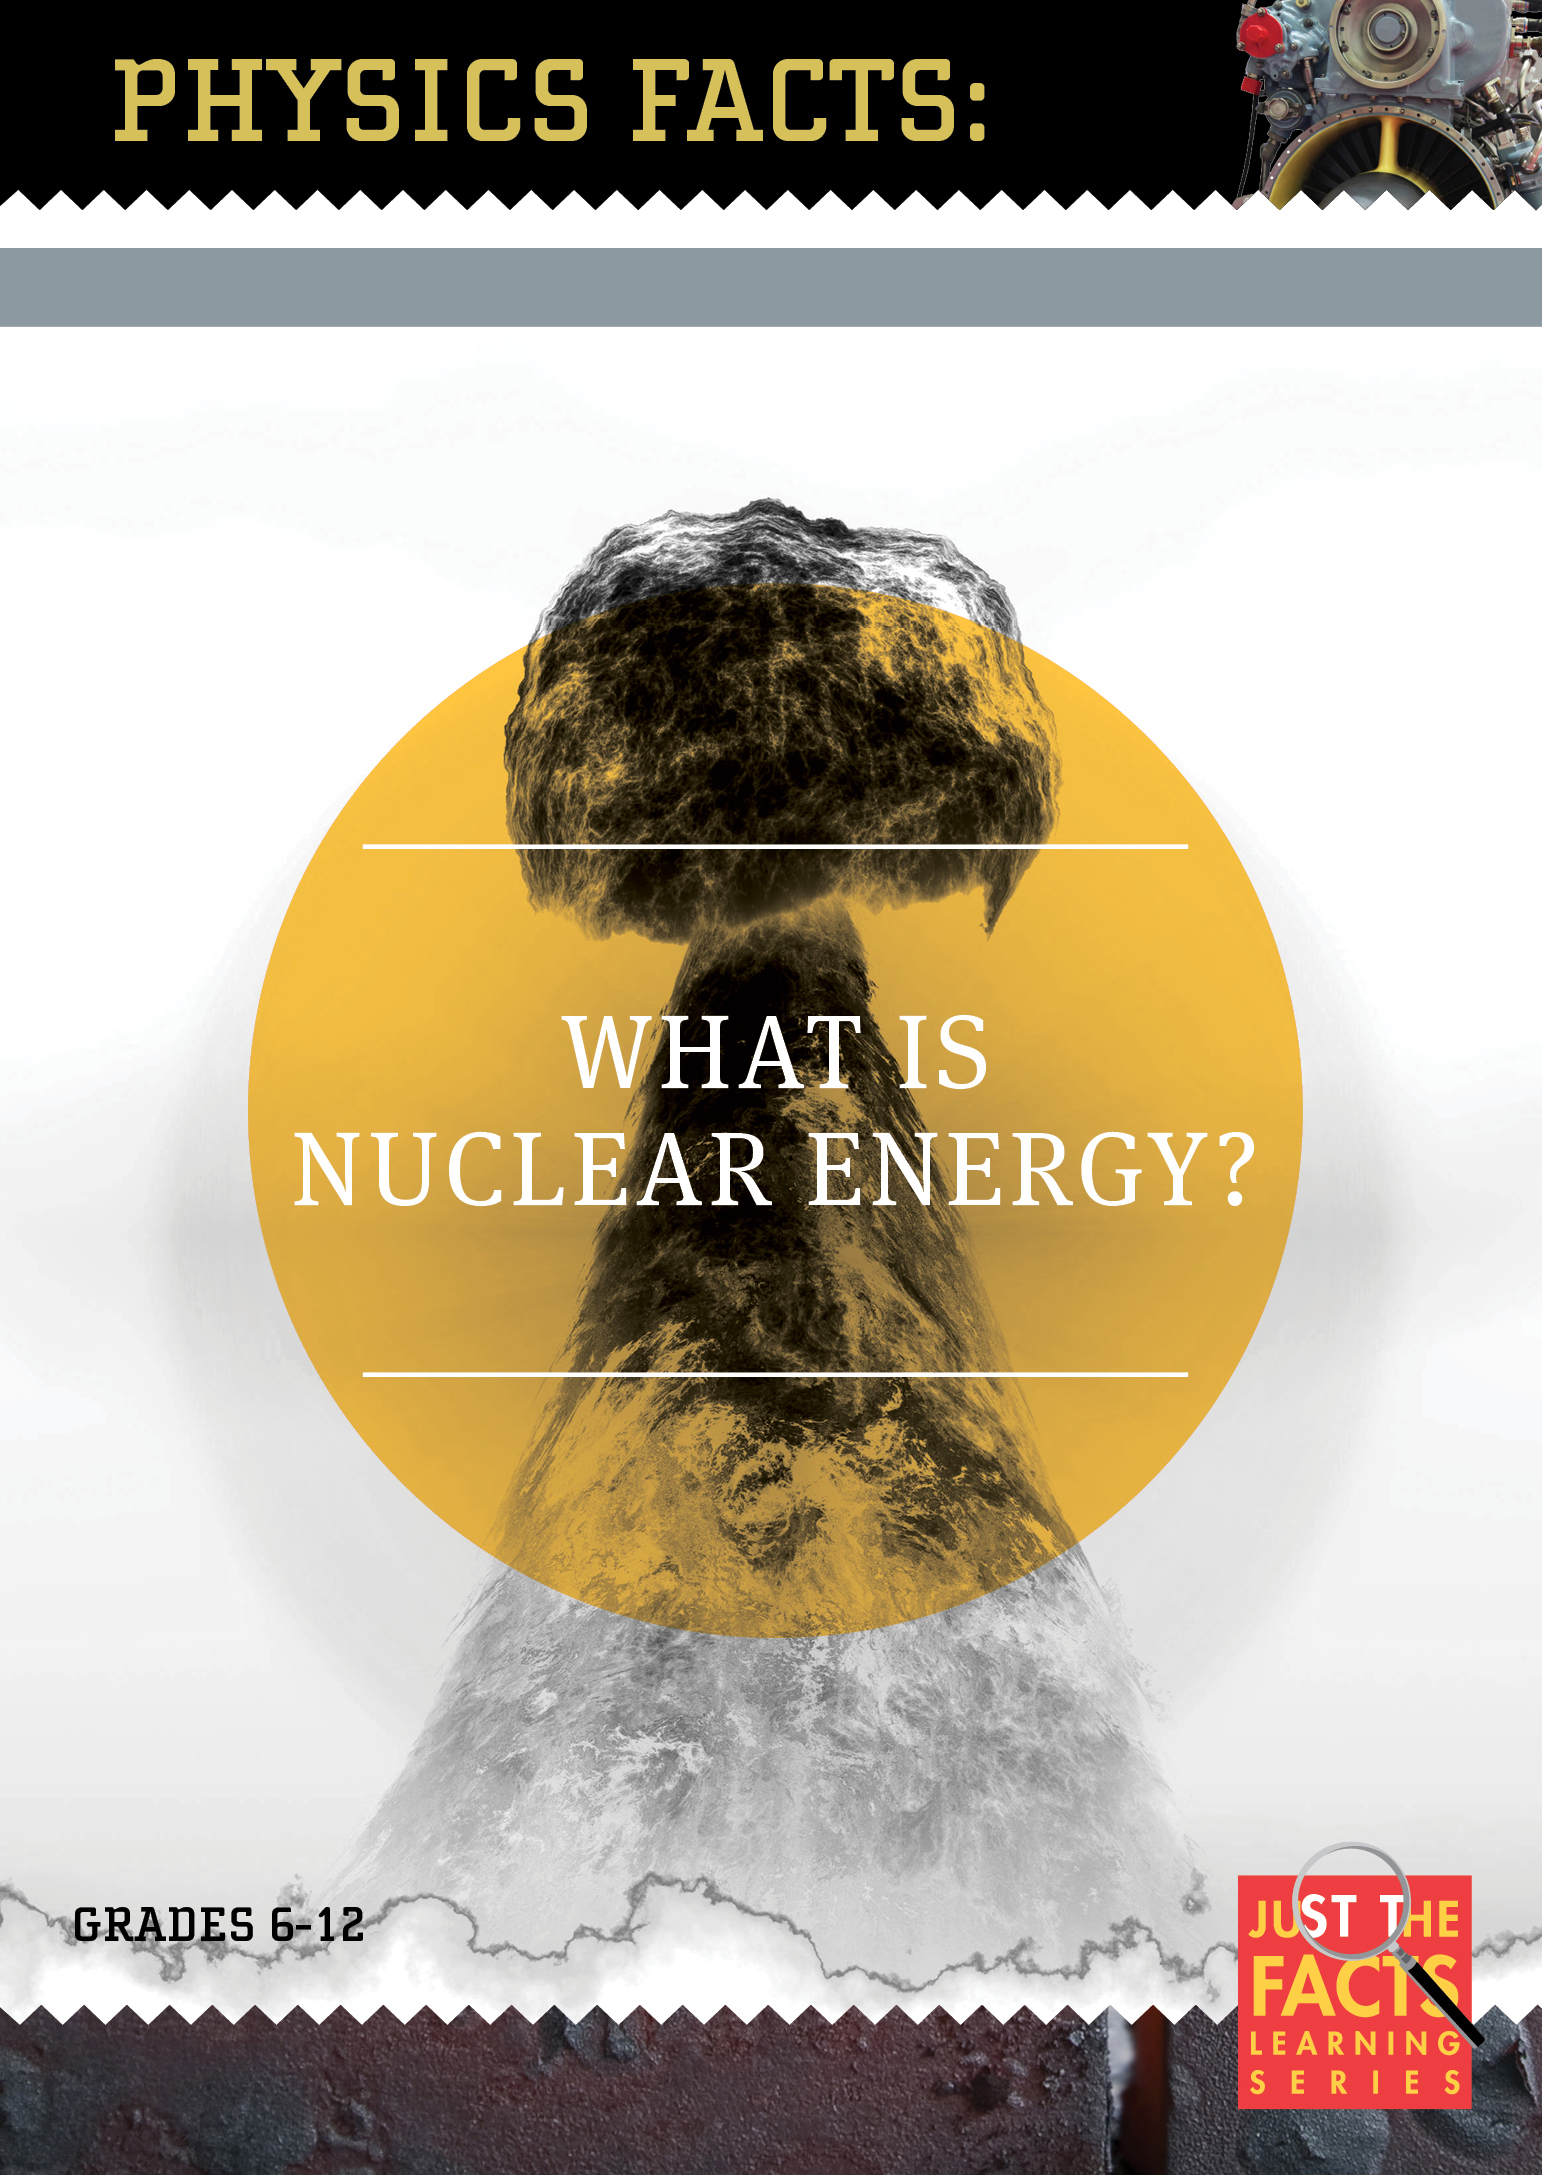 Physics Facts: What Is Nuclear Energy?